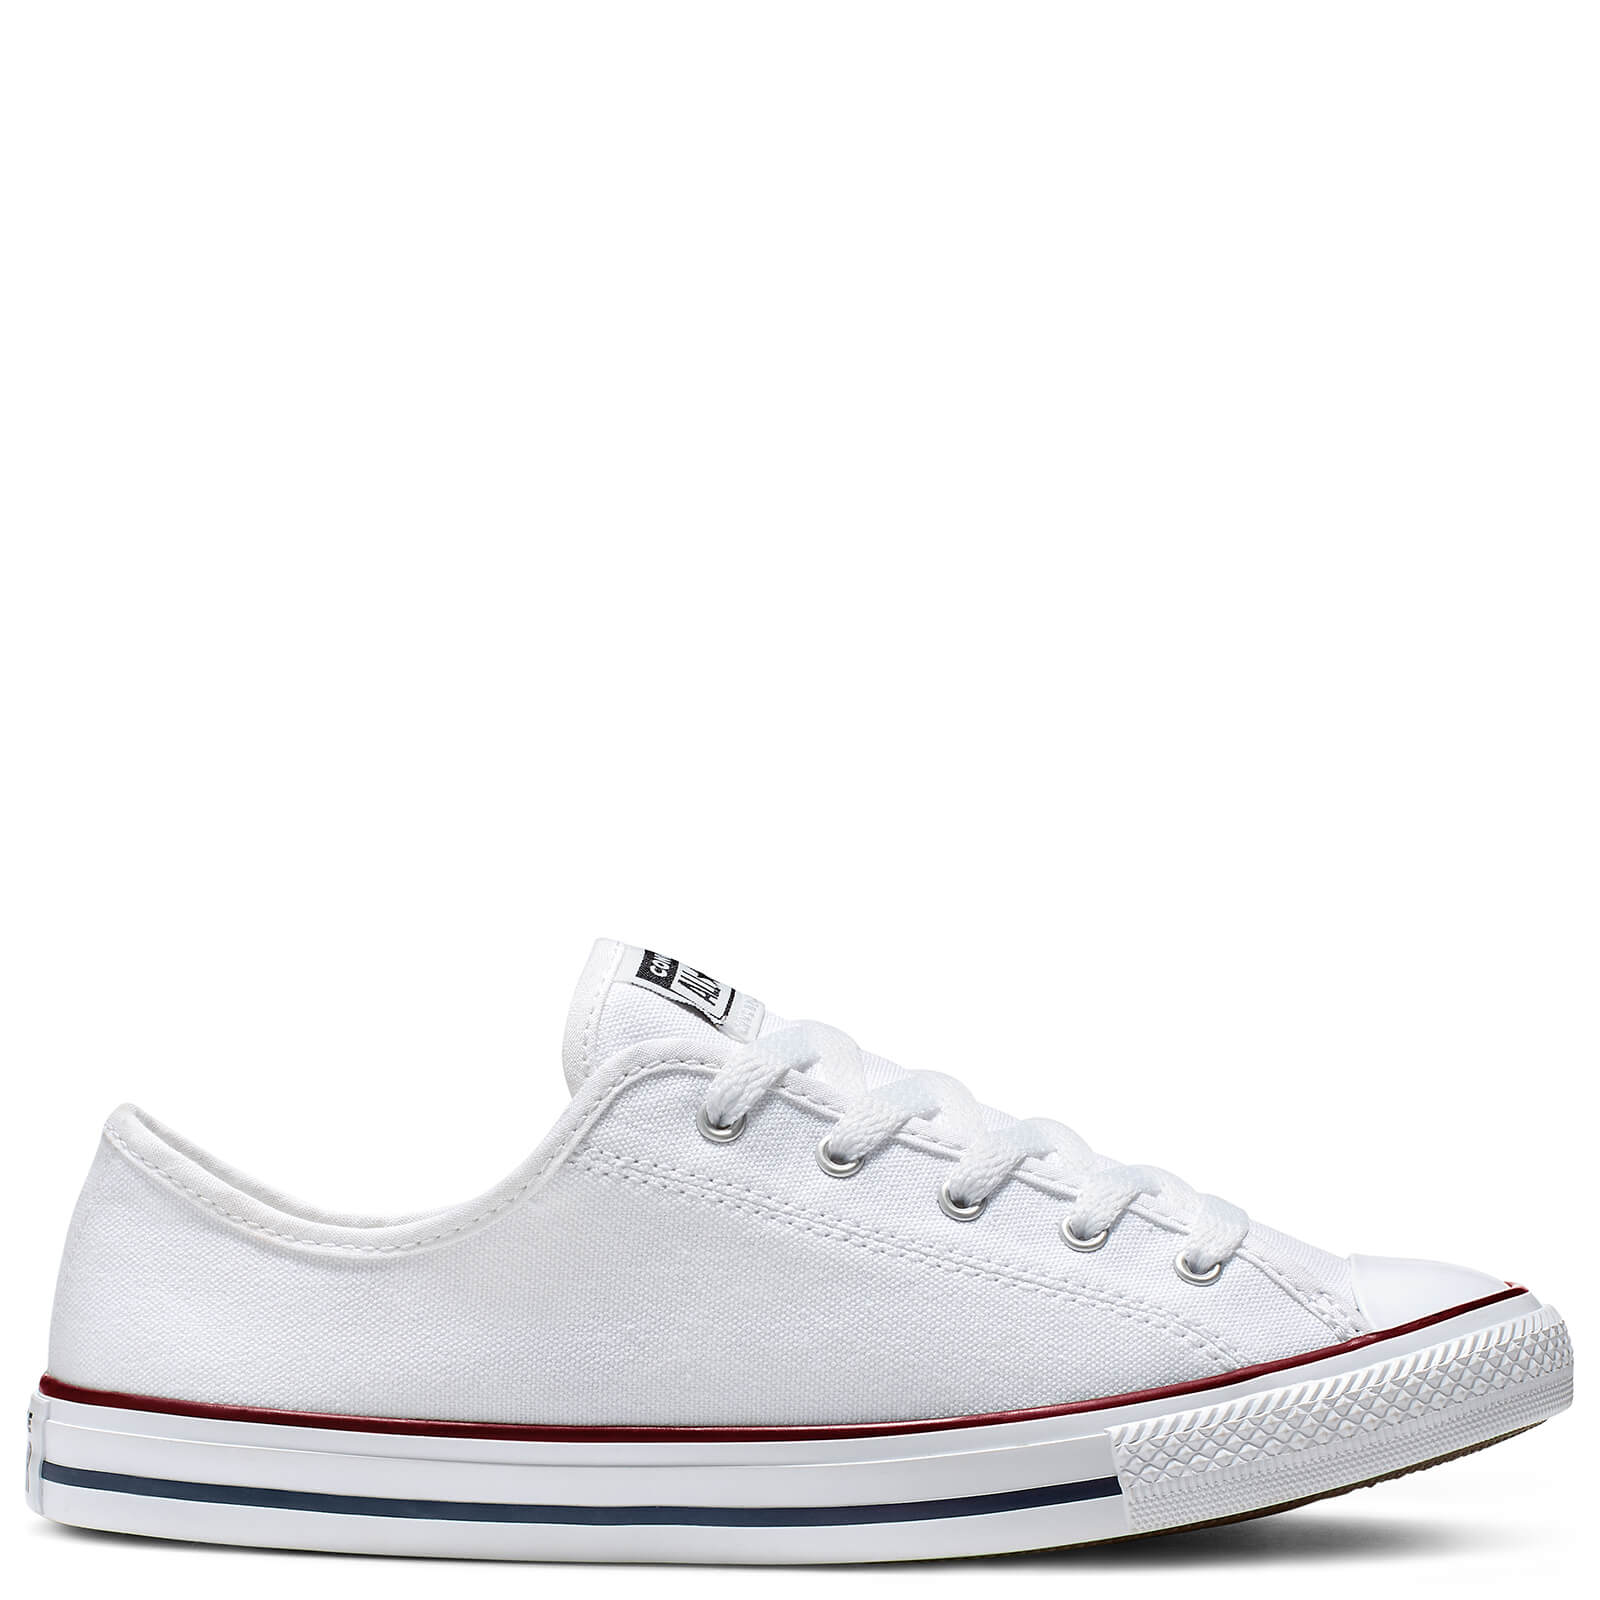 Converse Women's Chuck Taylor All Star Dainty Basic Canvas Ox Trainers WhiteRedBlue